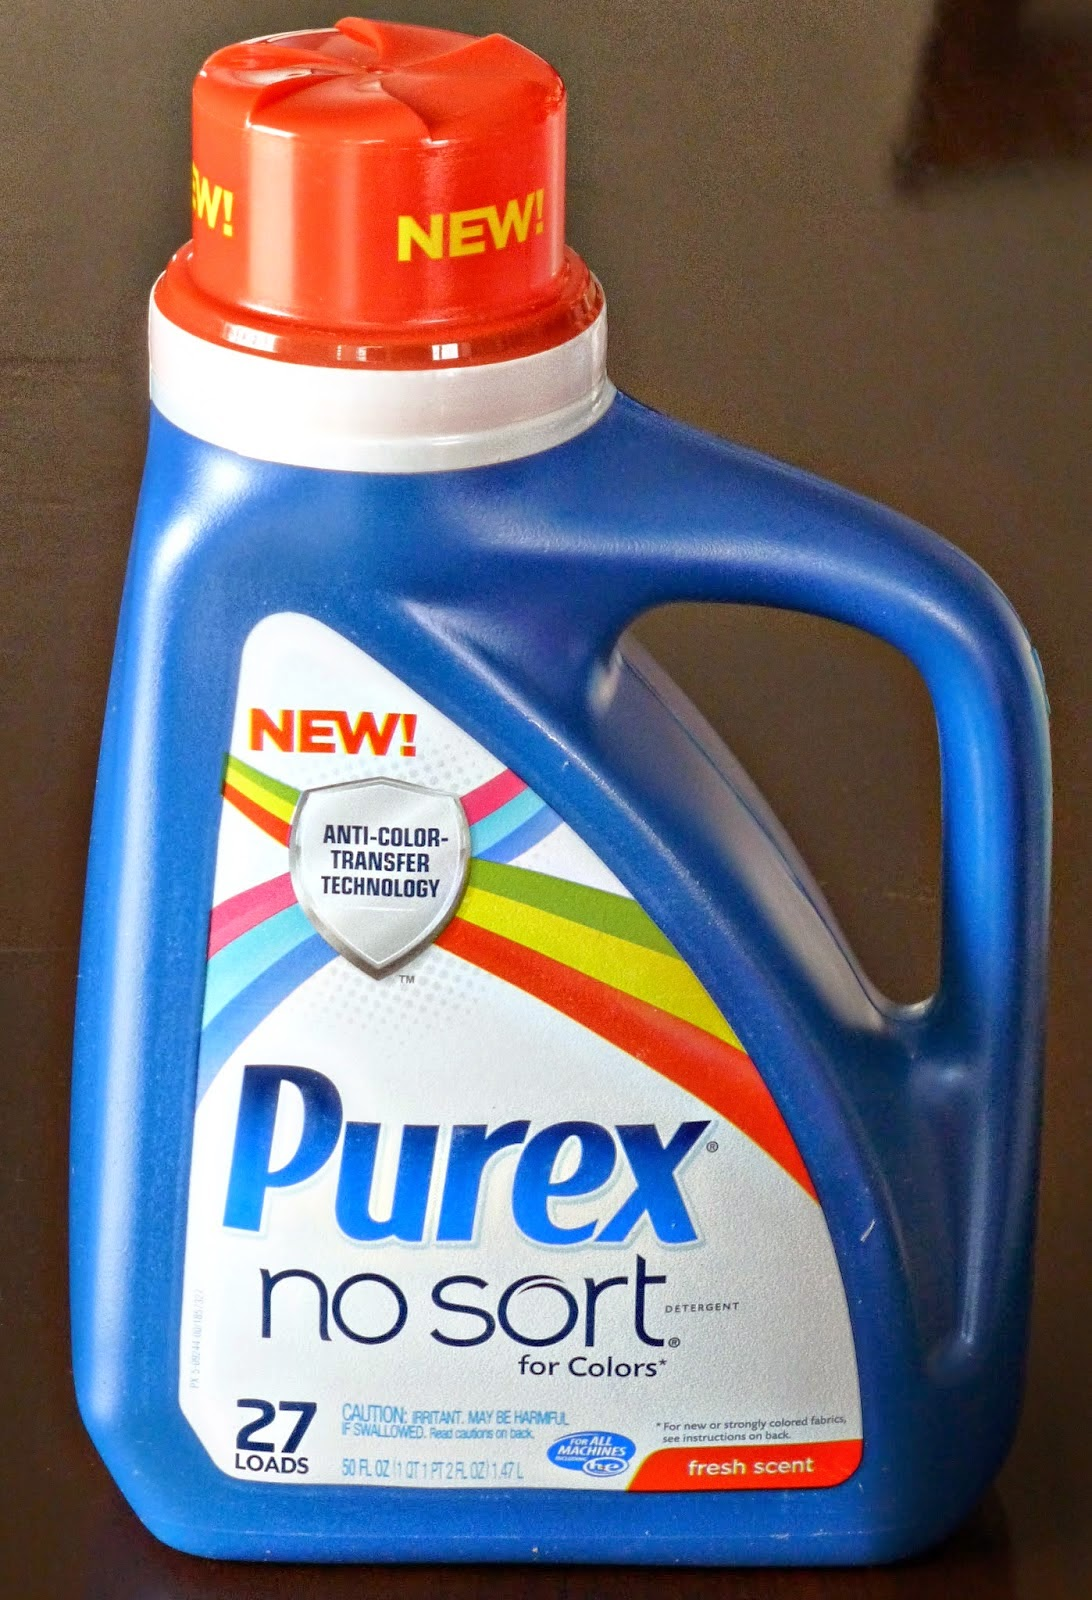 Enter to win Purex No Sort for Colors!